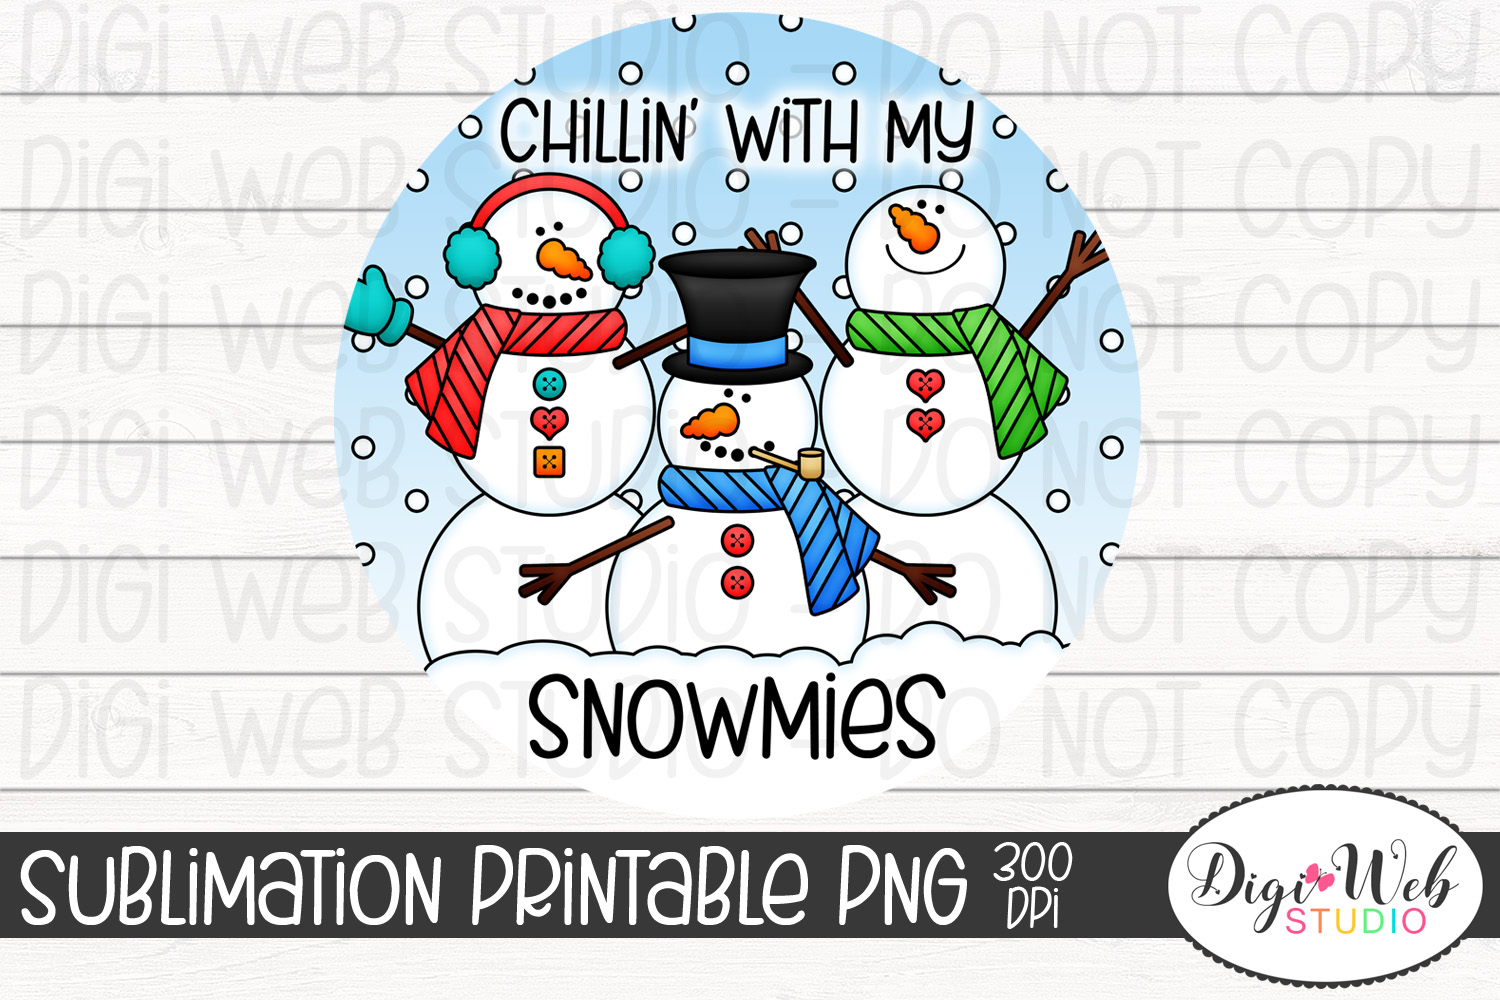 Crafters Sublimation Printable - Chillin' With My Snowmies example image 2